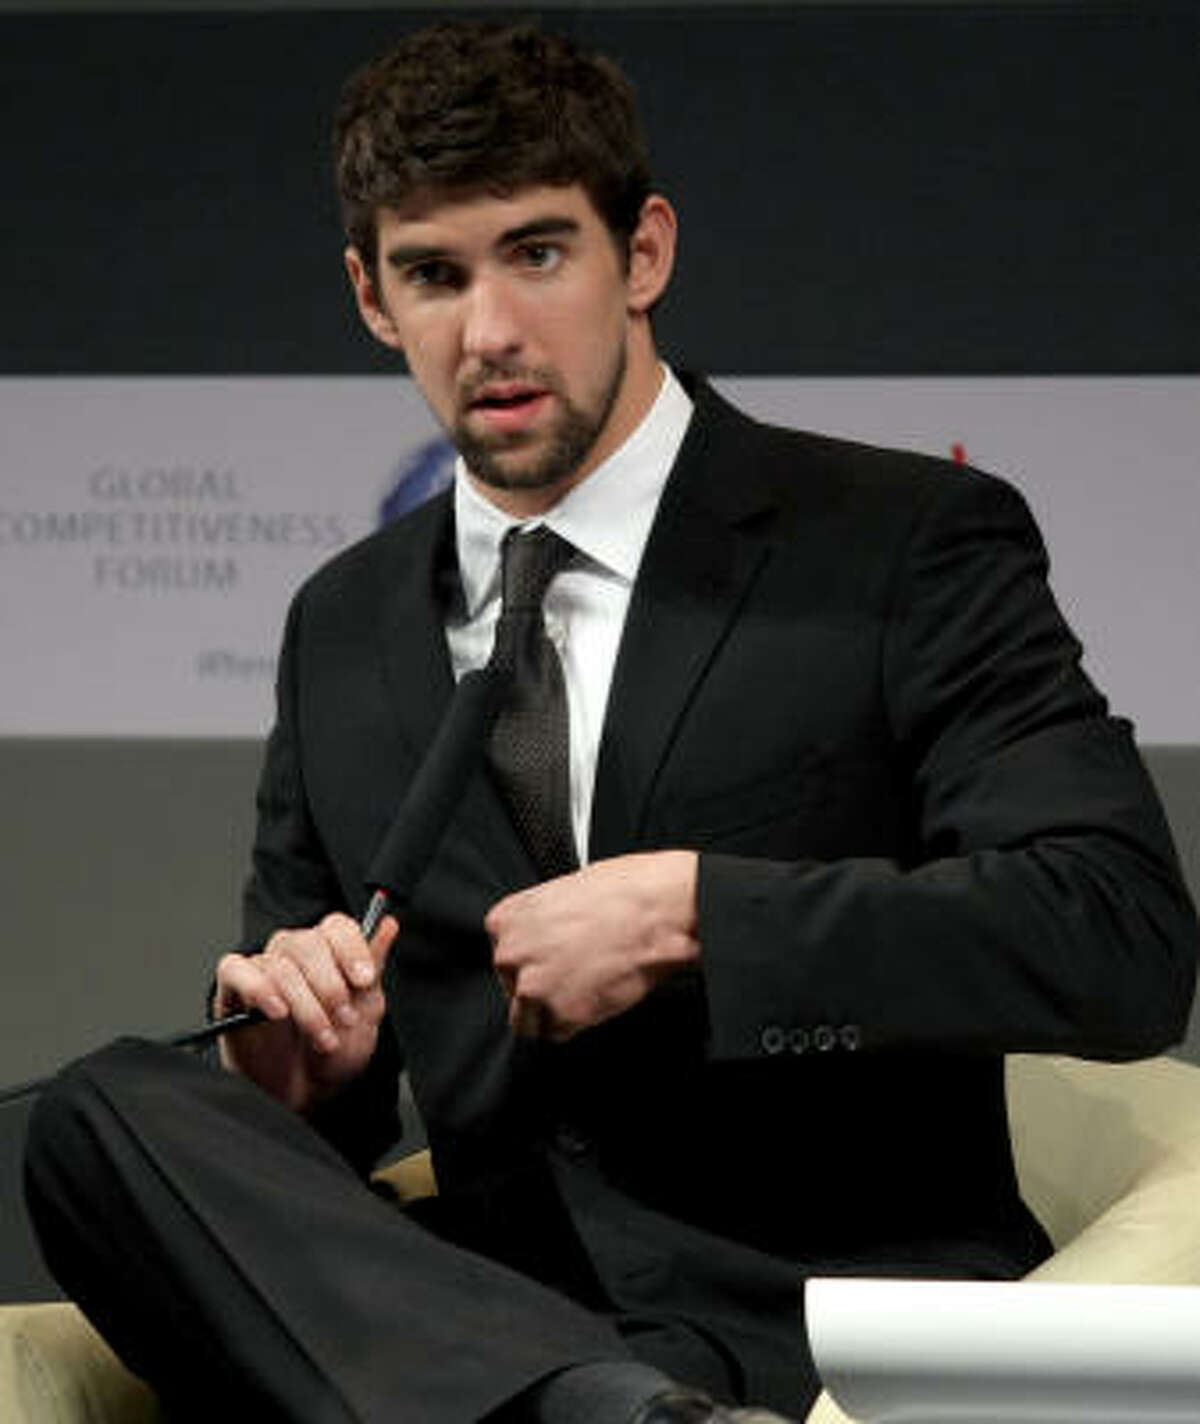 Michael Phelps landed in hot water after a photo of him apparently smoking marijuana was published in a tabloid.